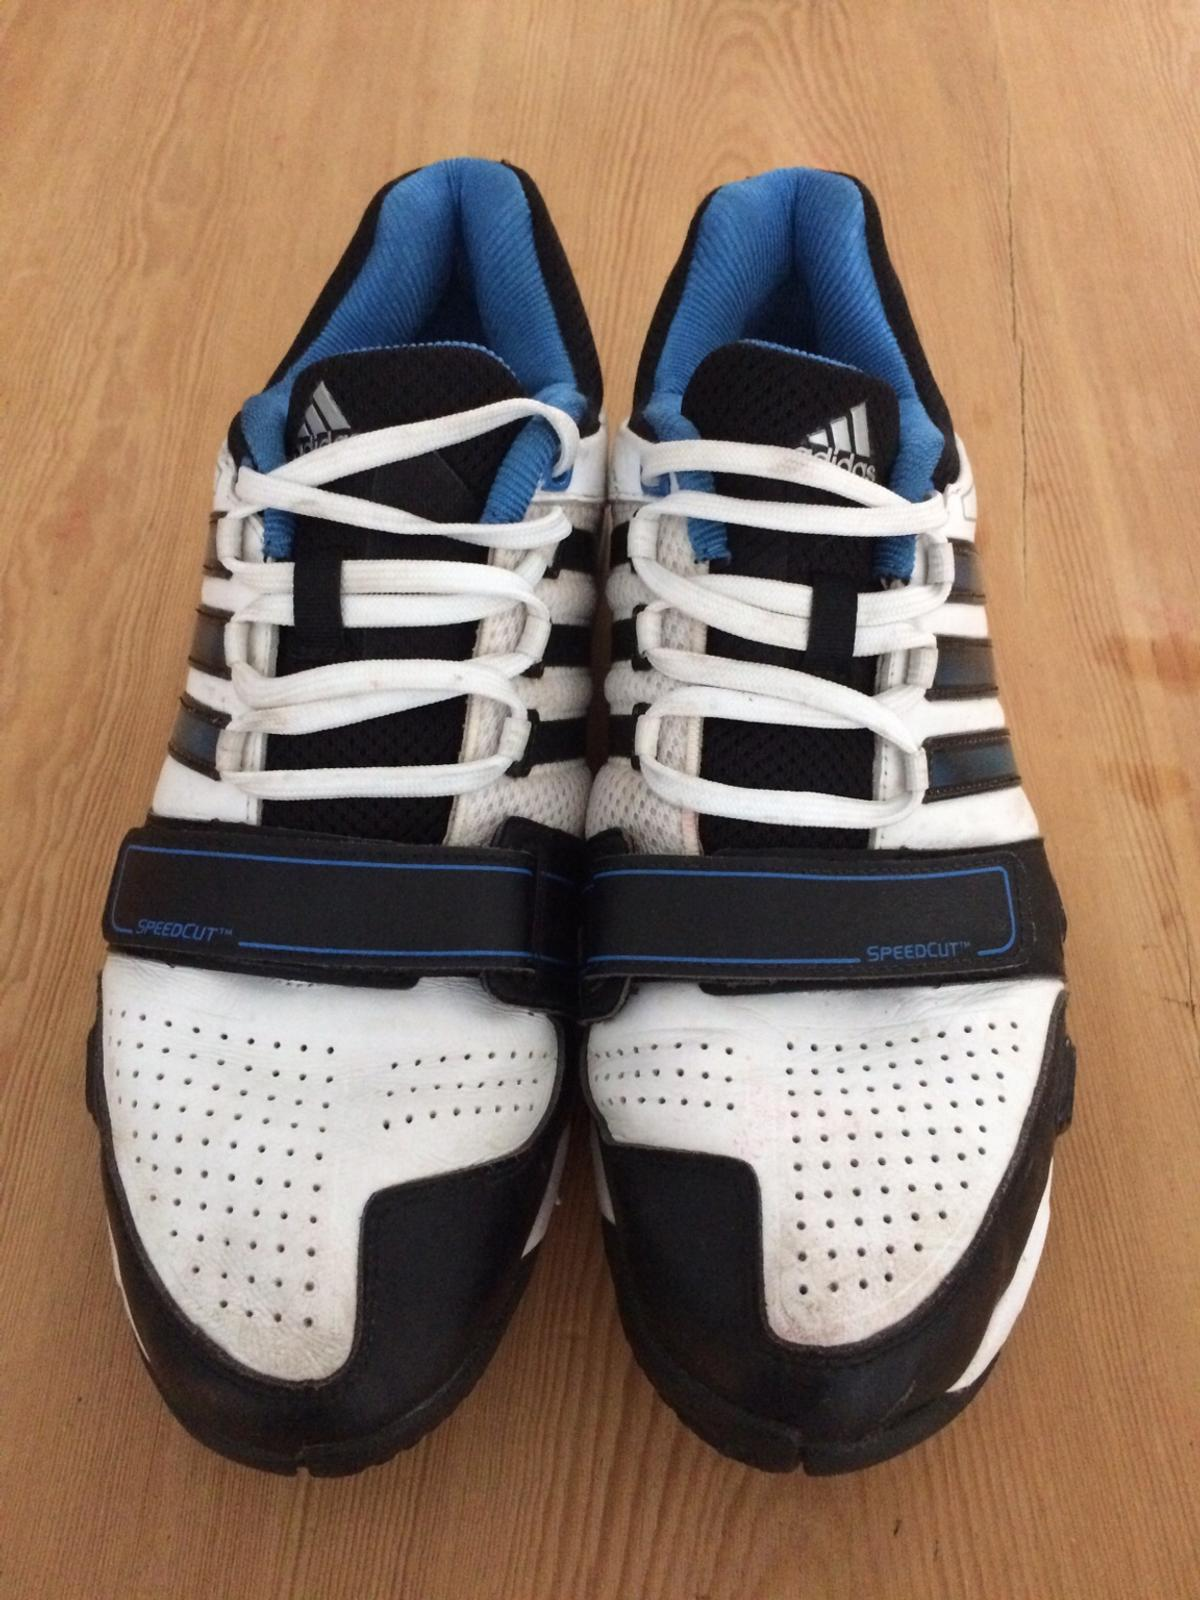 Adidas Speed Cut Trainers Size 9.5